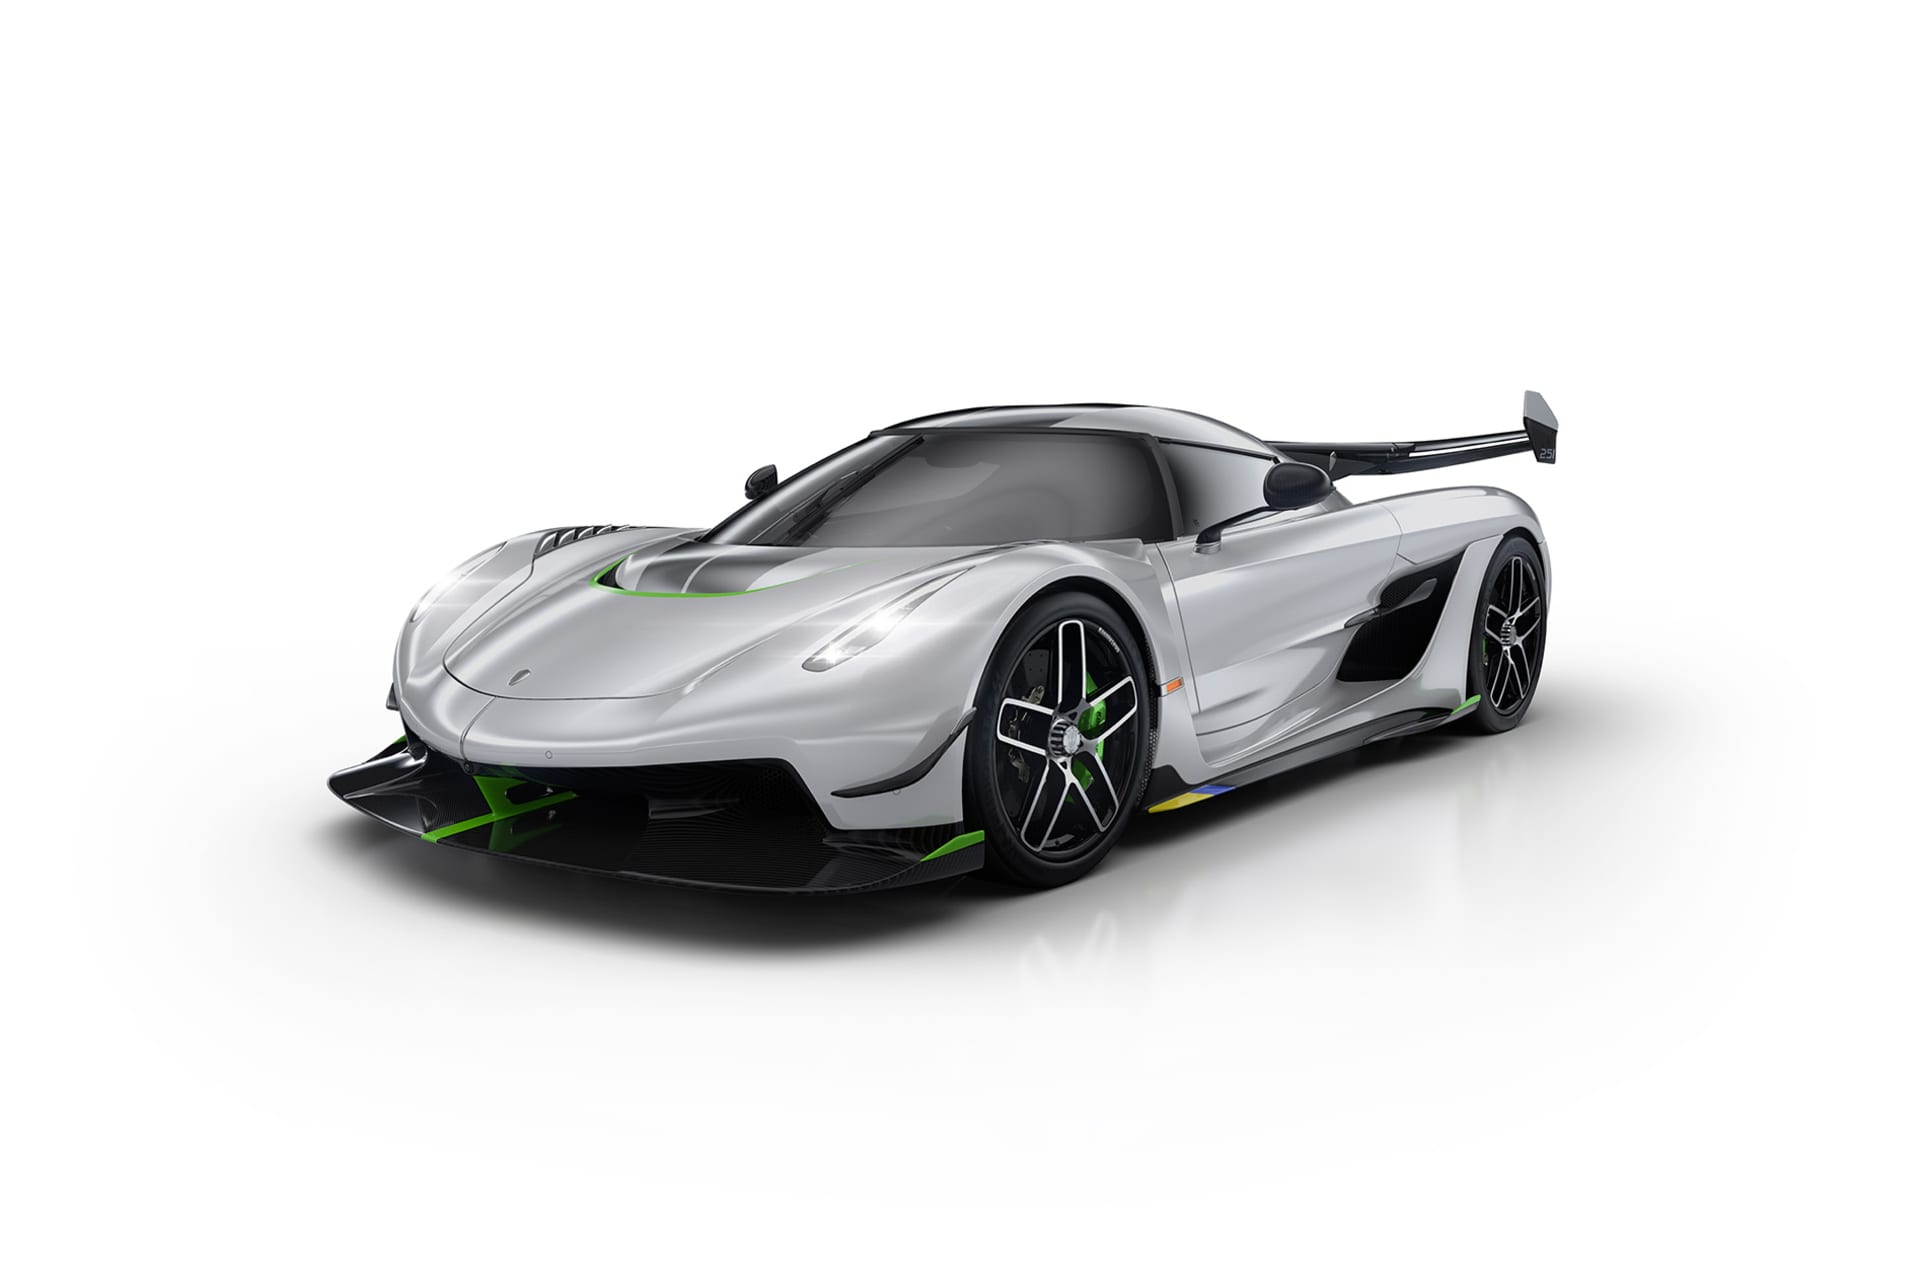 Let's introduce Koneigsegg Jesko! A bigger, stronger, faster and more expensive Koenigsegg than ever before!